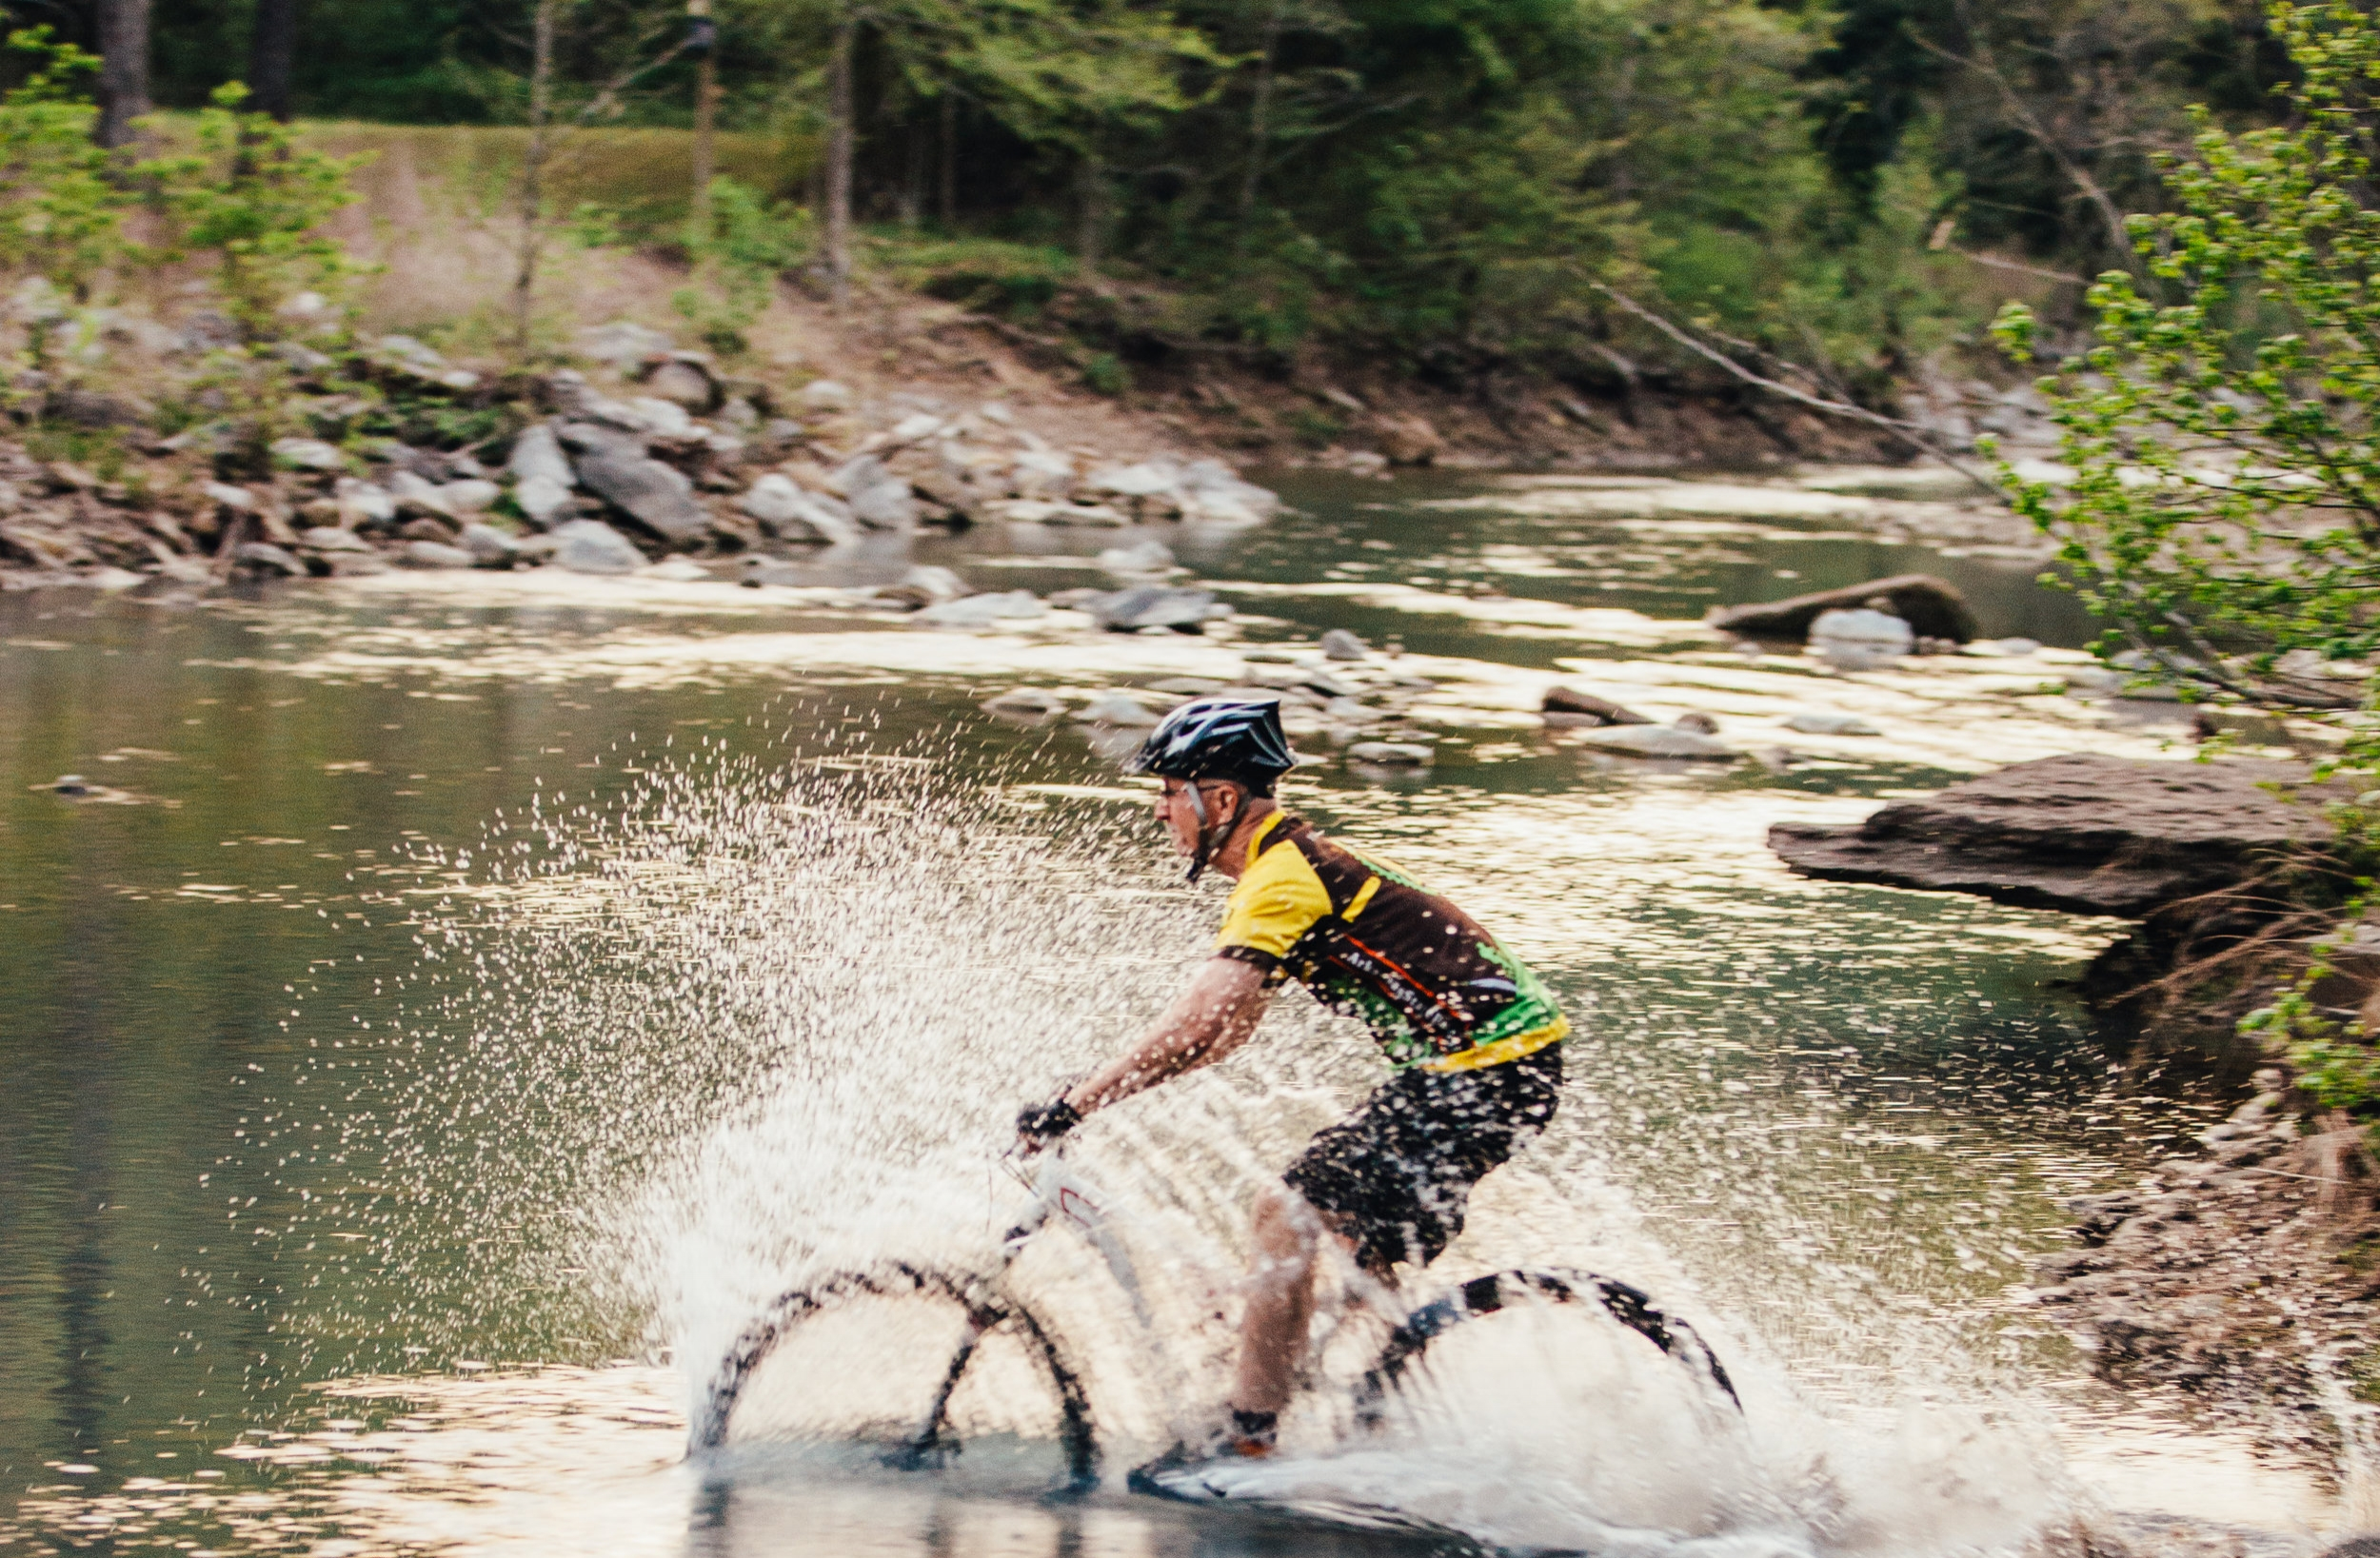 Devil's Den Assistant Superintendent, Tim Scott was instrumental in bringing mountain biking into the Arkansas State Parks, and he still regularly rides that first trail, the Fossil Flats Trail at Devil's Den State Park.